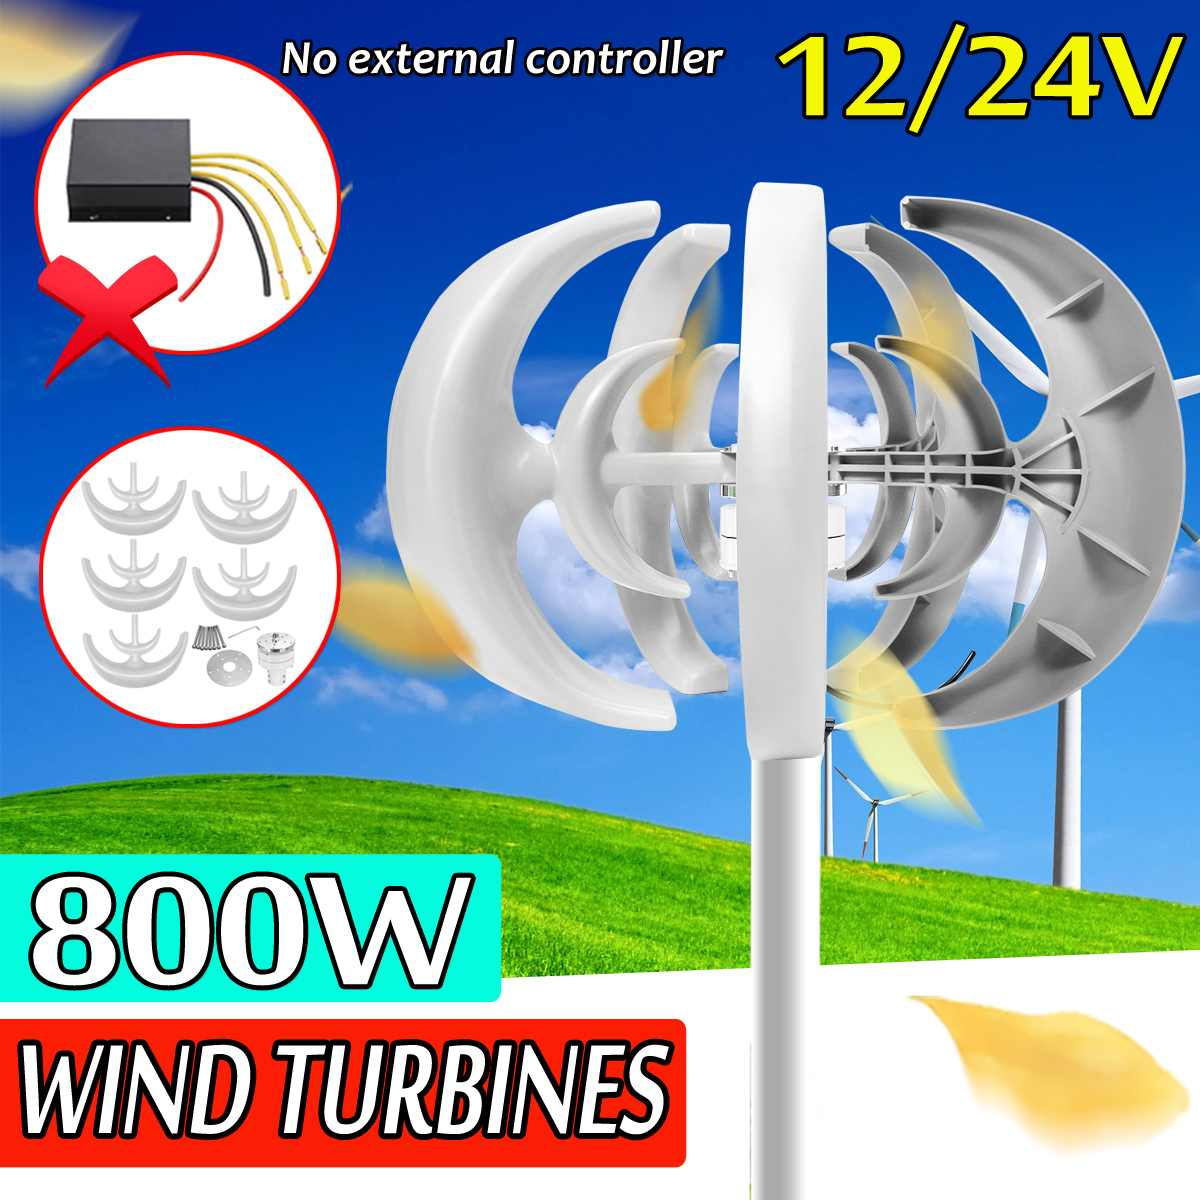 800W DC 12/24v Wind power generator 5 blades wind For Home Streetlight Use Alternative Energy Vertical axis double-helix